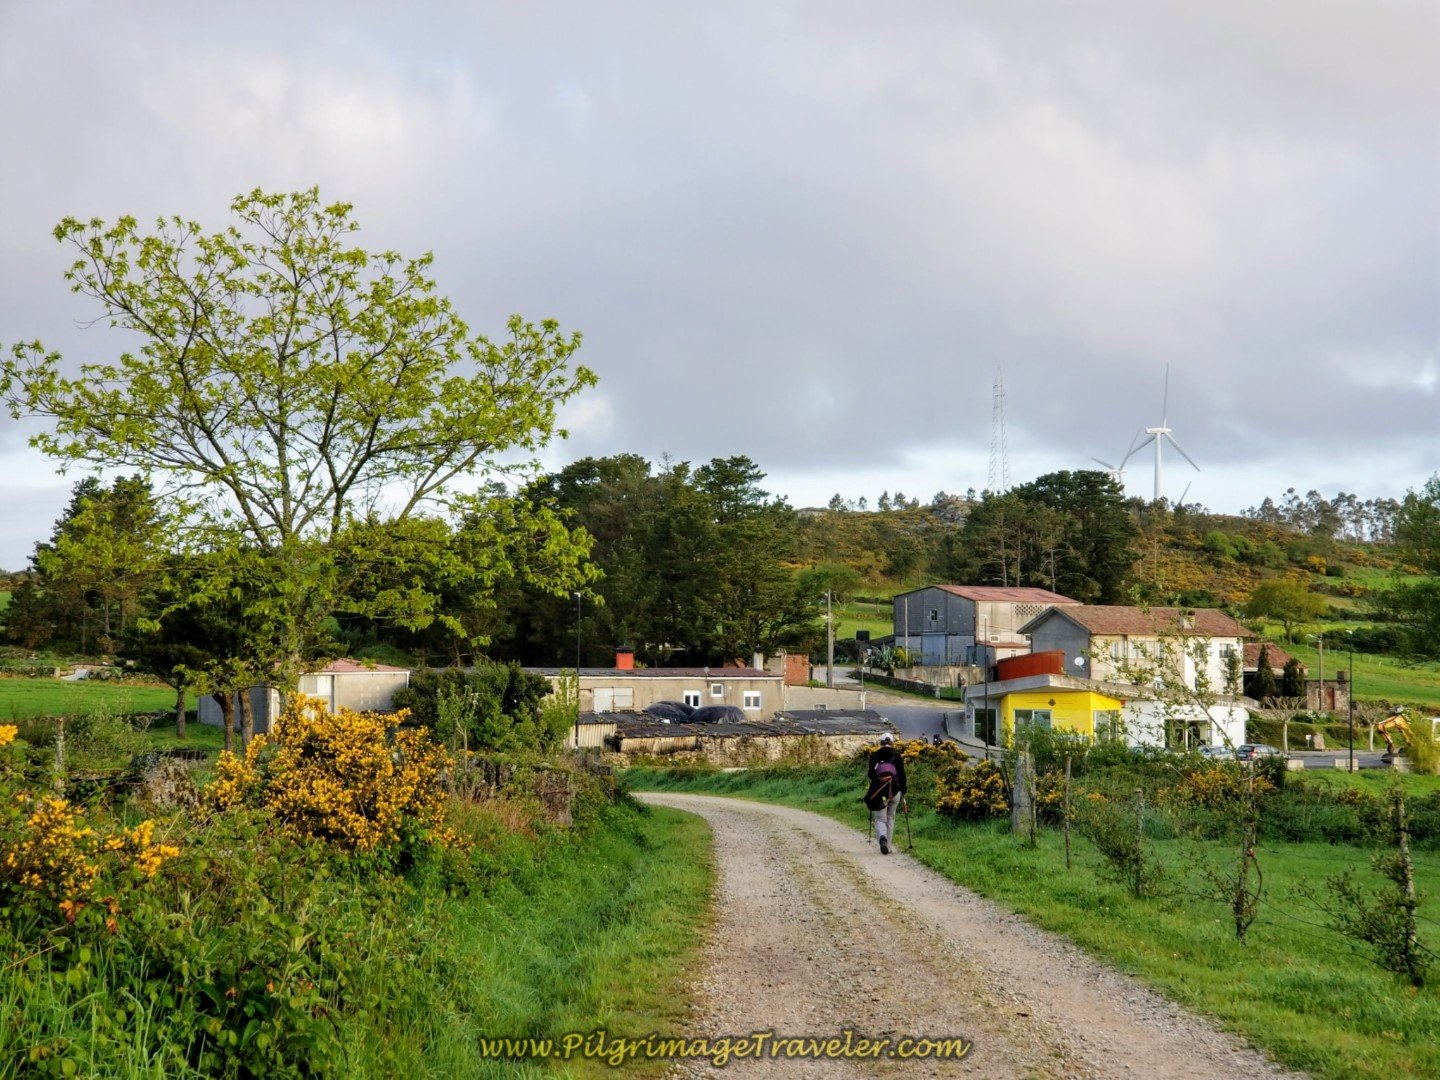 Town of Hospital Ahead on day three of the Camino Finisterre